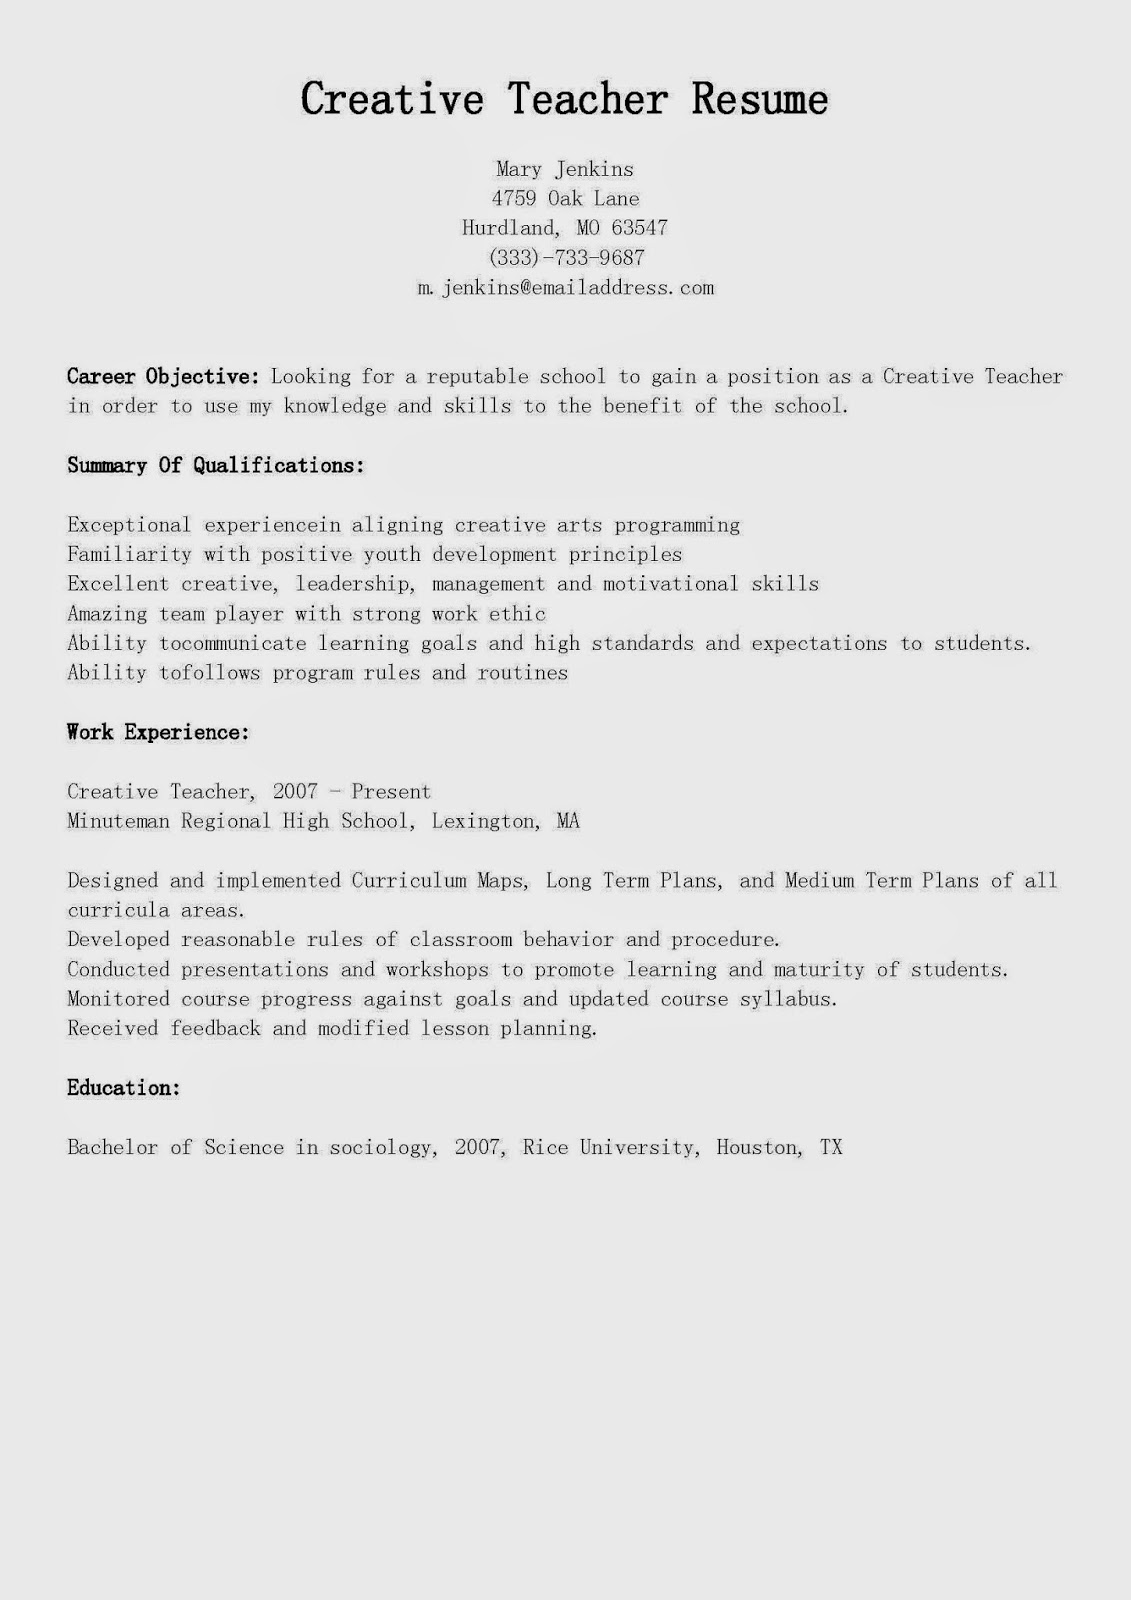 4 English Teacher Resume Samples Examples  Download Now!